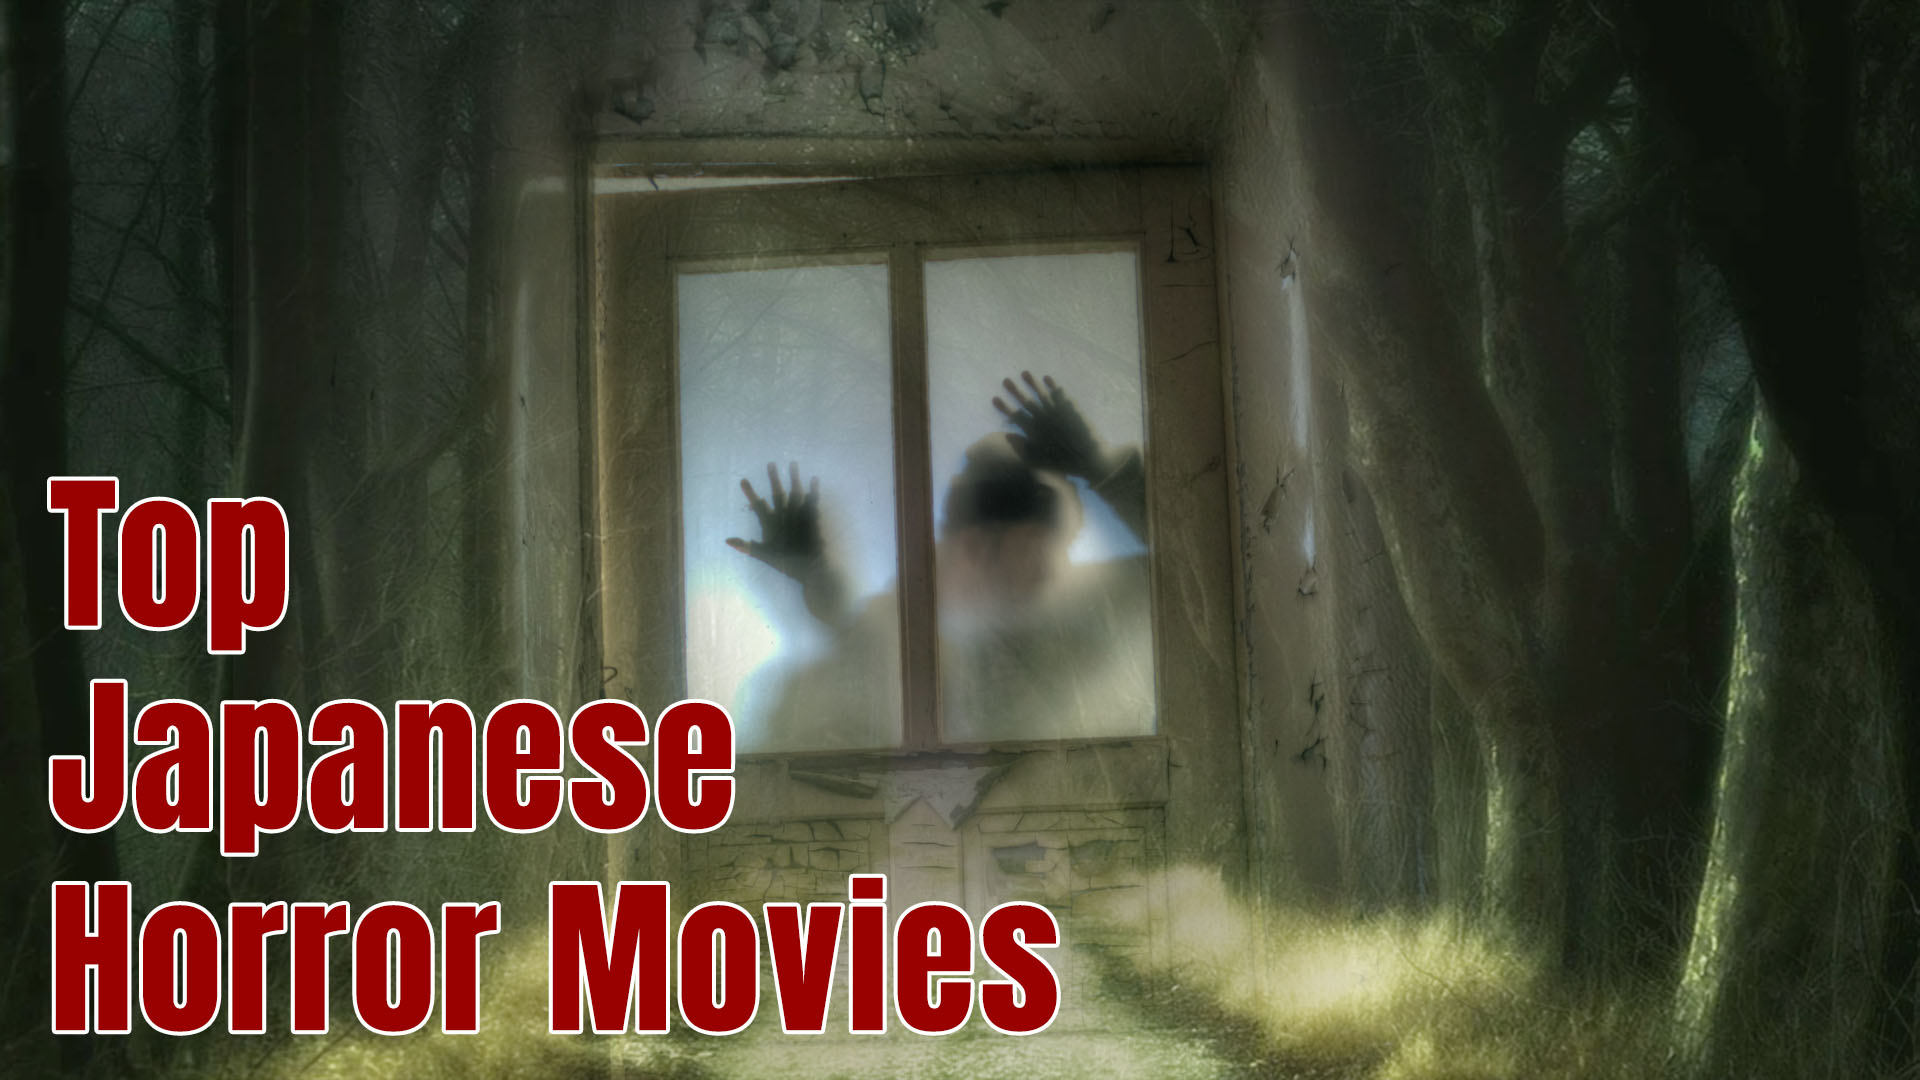 Top Japanese Horror Movies